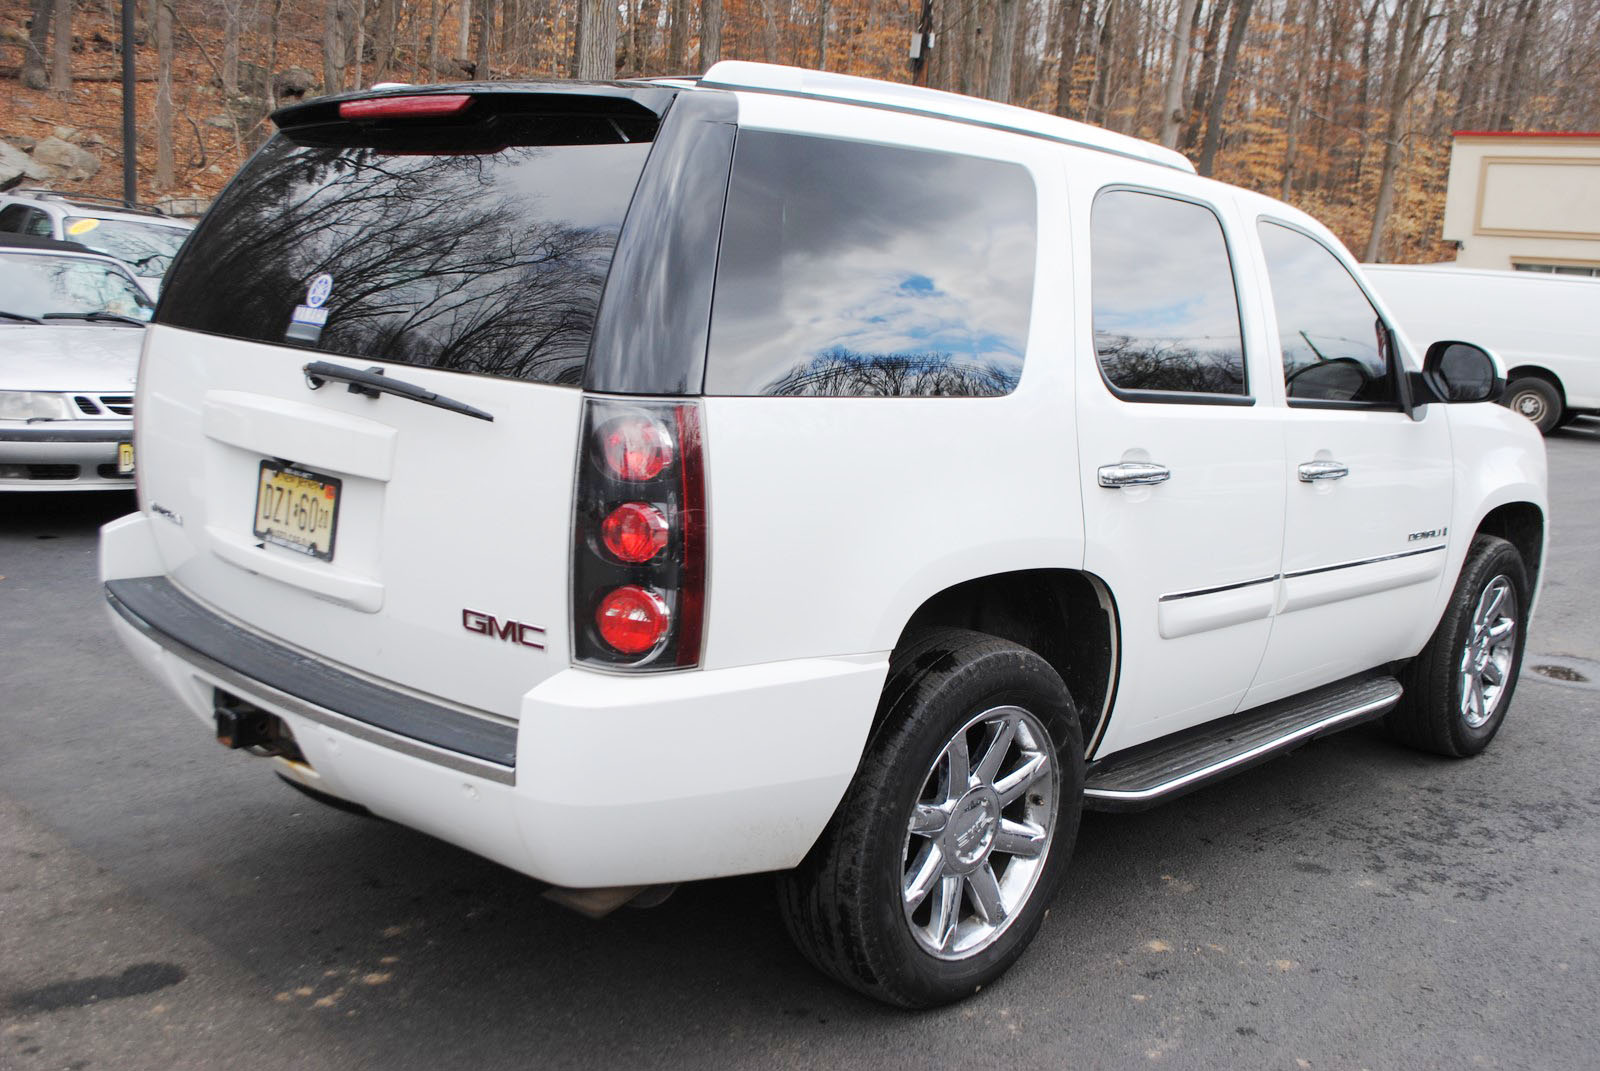 used 2007 gmc yukon for sale west milford nj. Black Bedroom Furniture Sets. Home Design Ideas